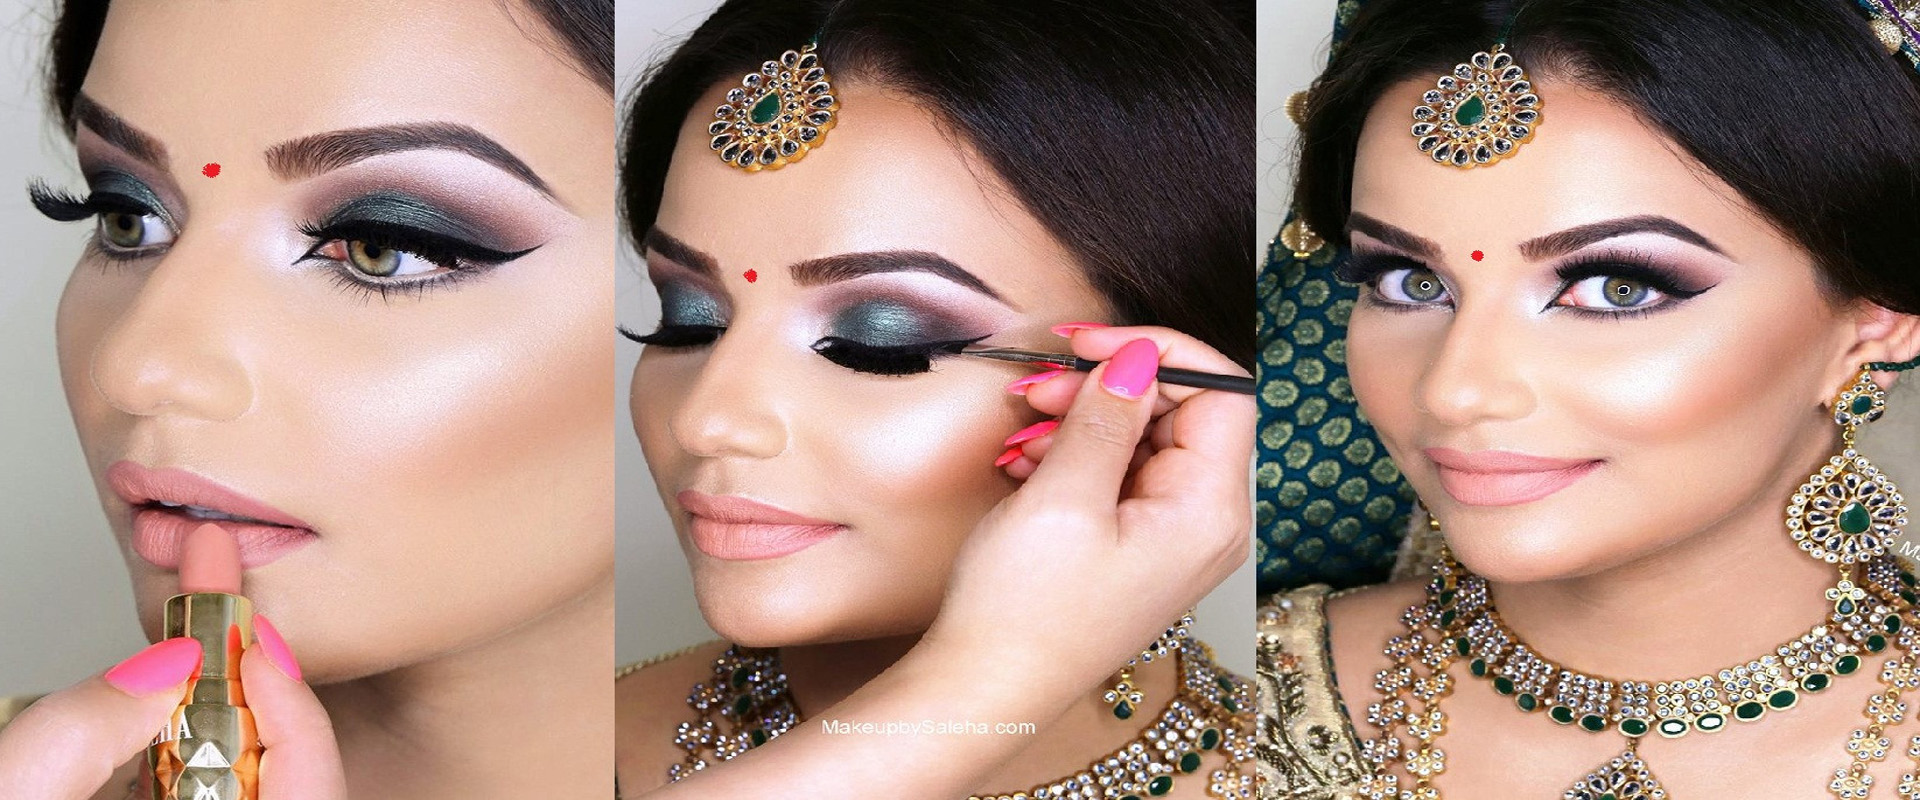 Bridal Makeup Salon Bridal Makeup Hair Spa Saloon Beauty Parlour In Bhubaneswar